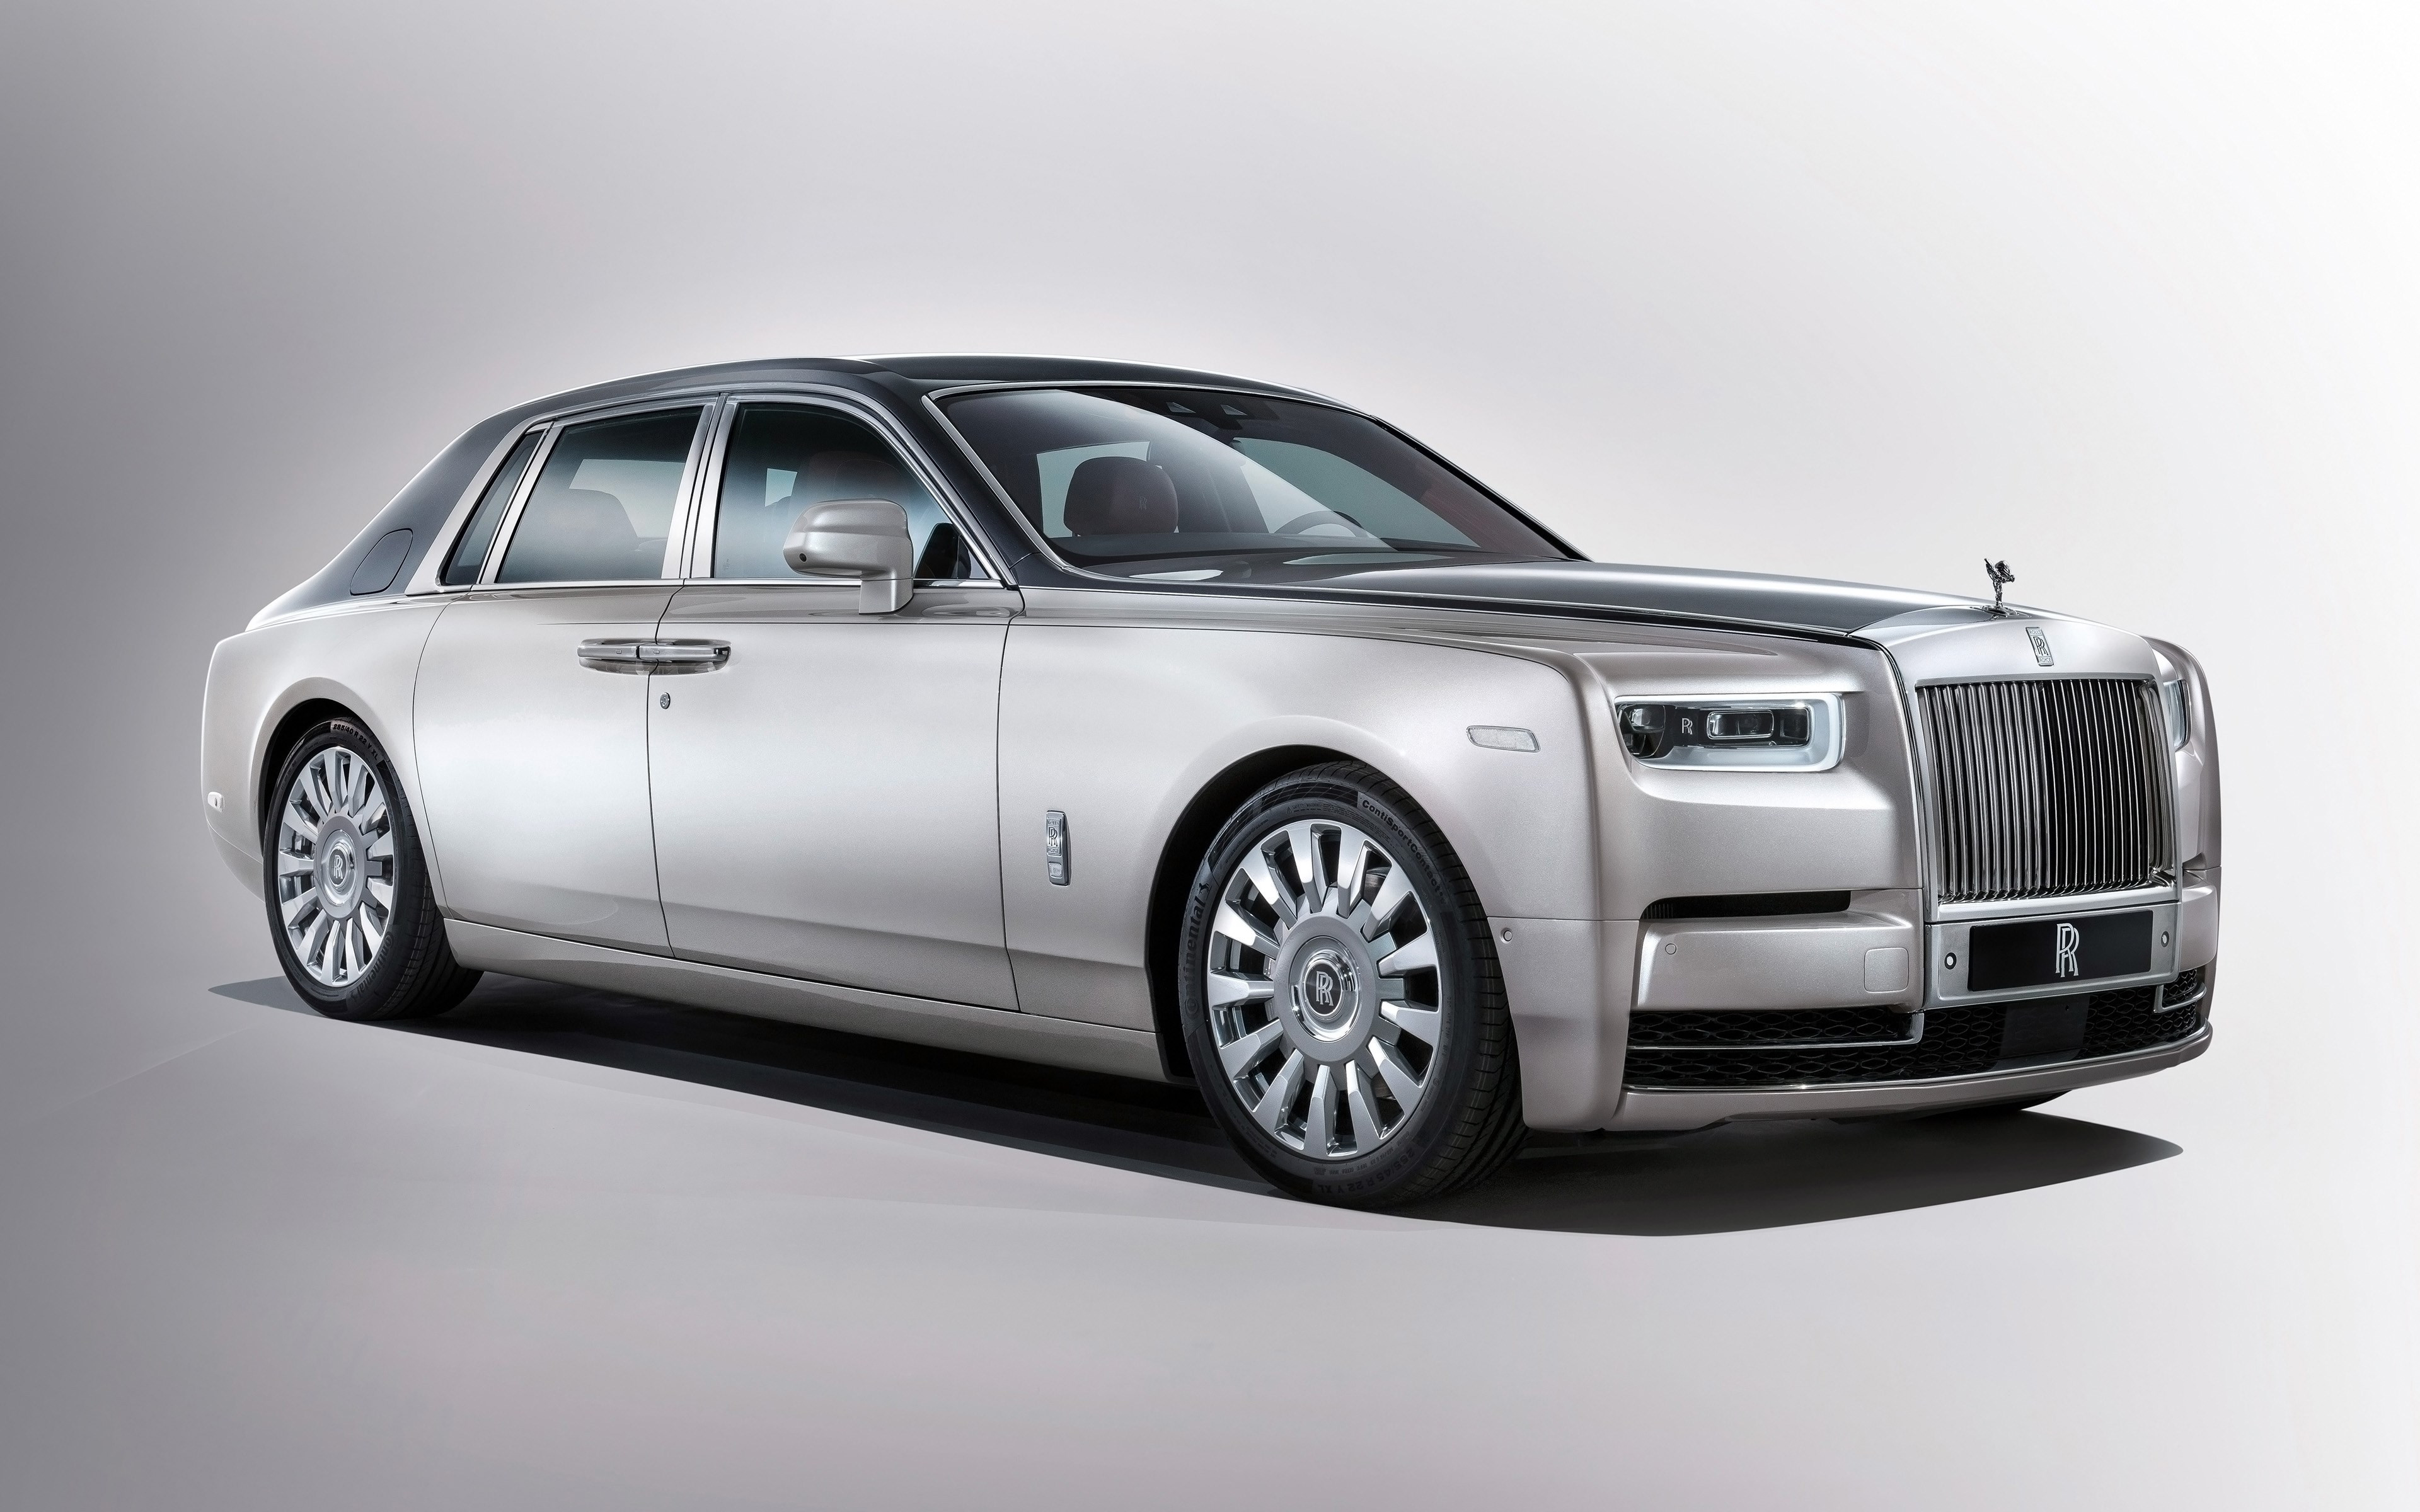 Rolls Royce Phantom wallpaper 3840x2400